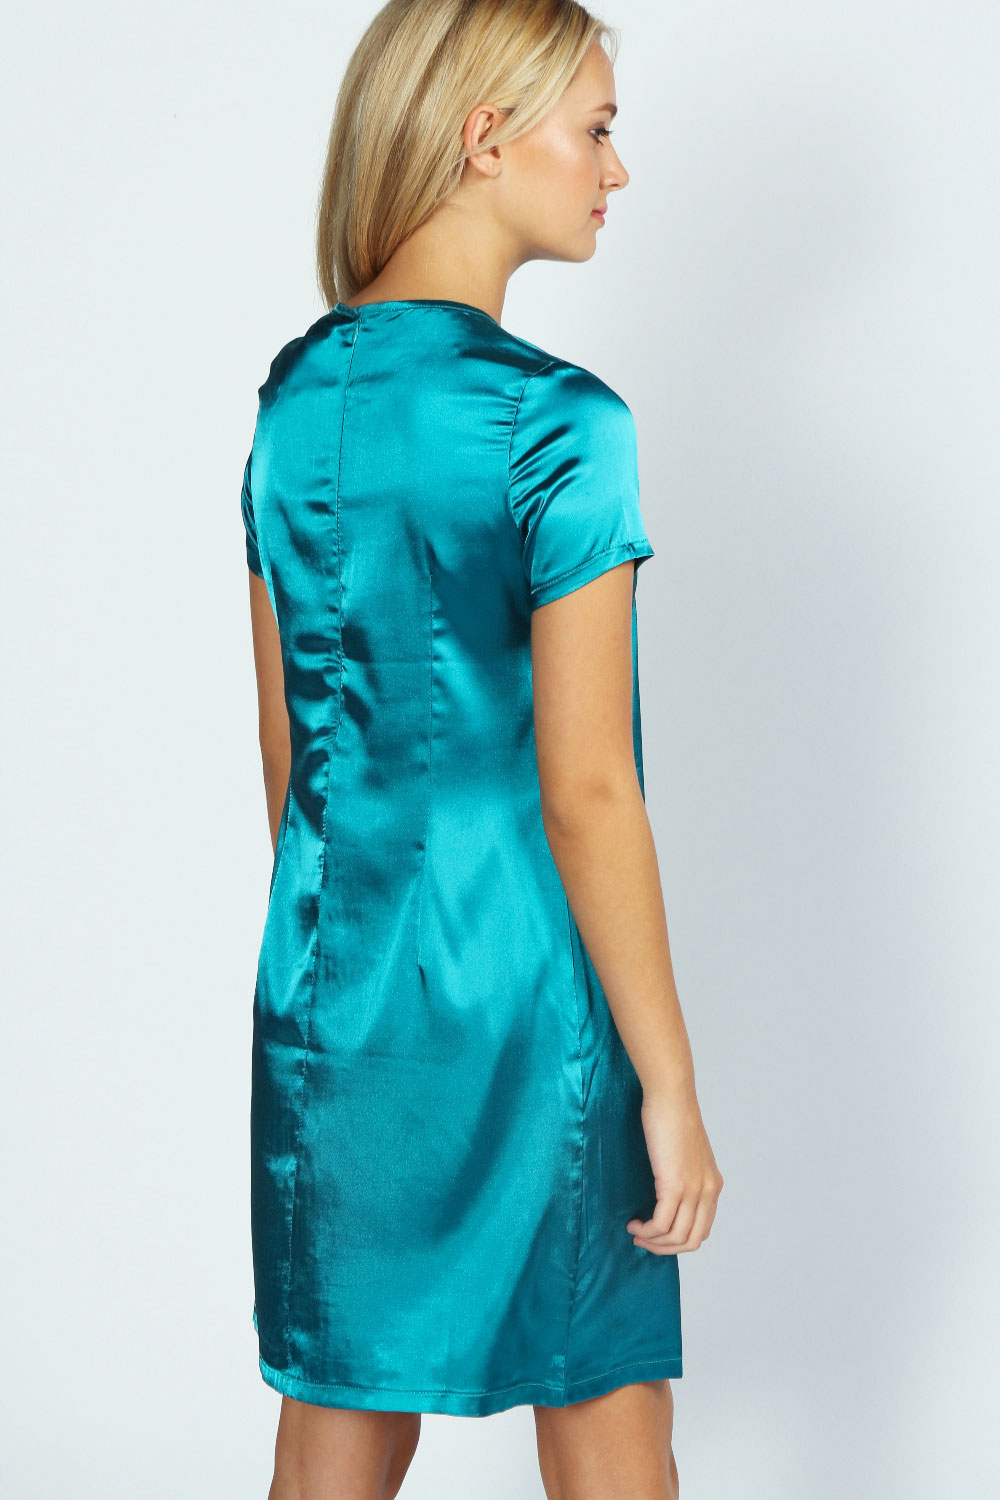 Teal Joanne Satin Detail Shift Dress